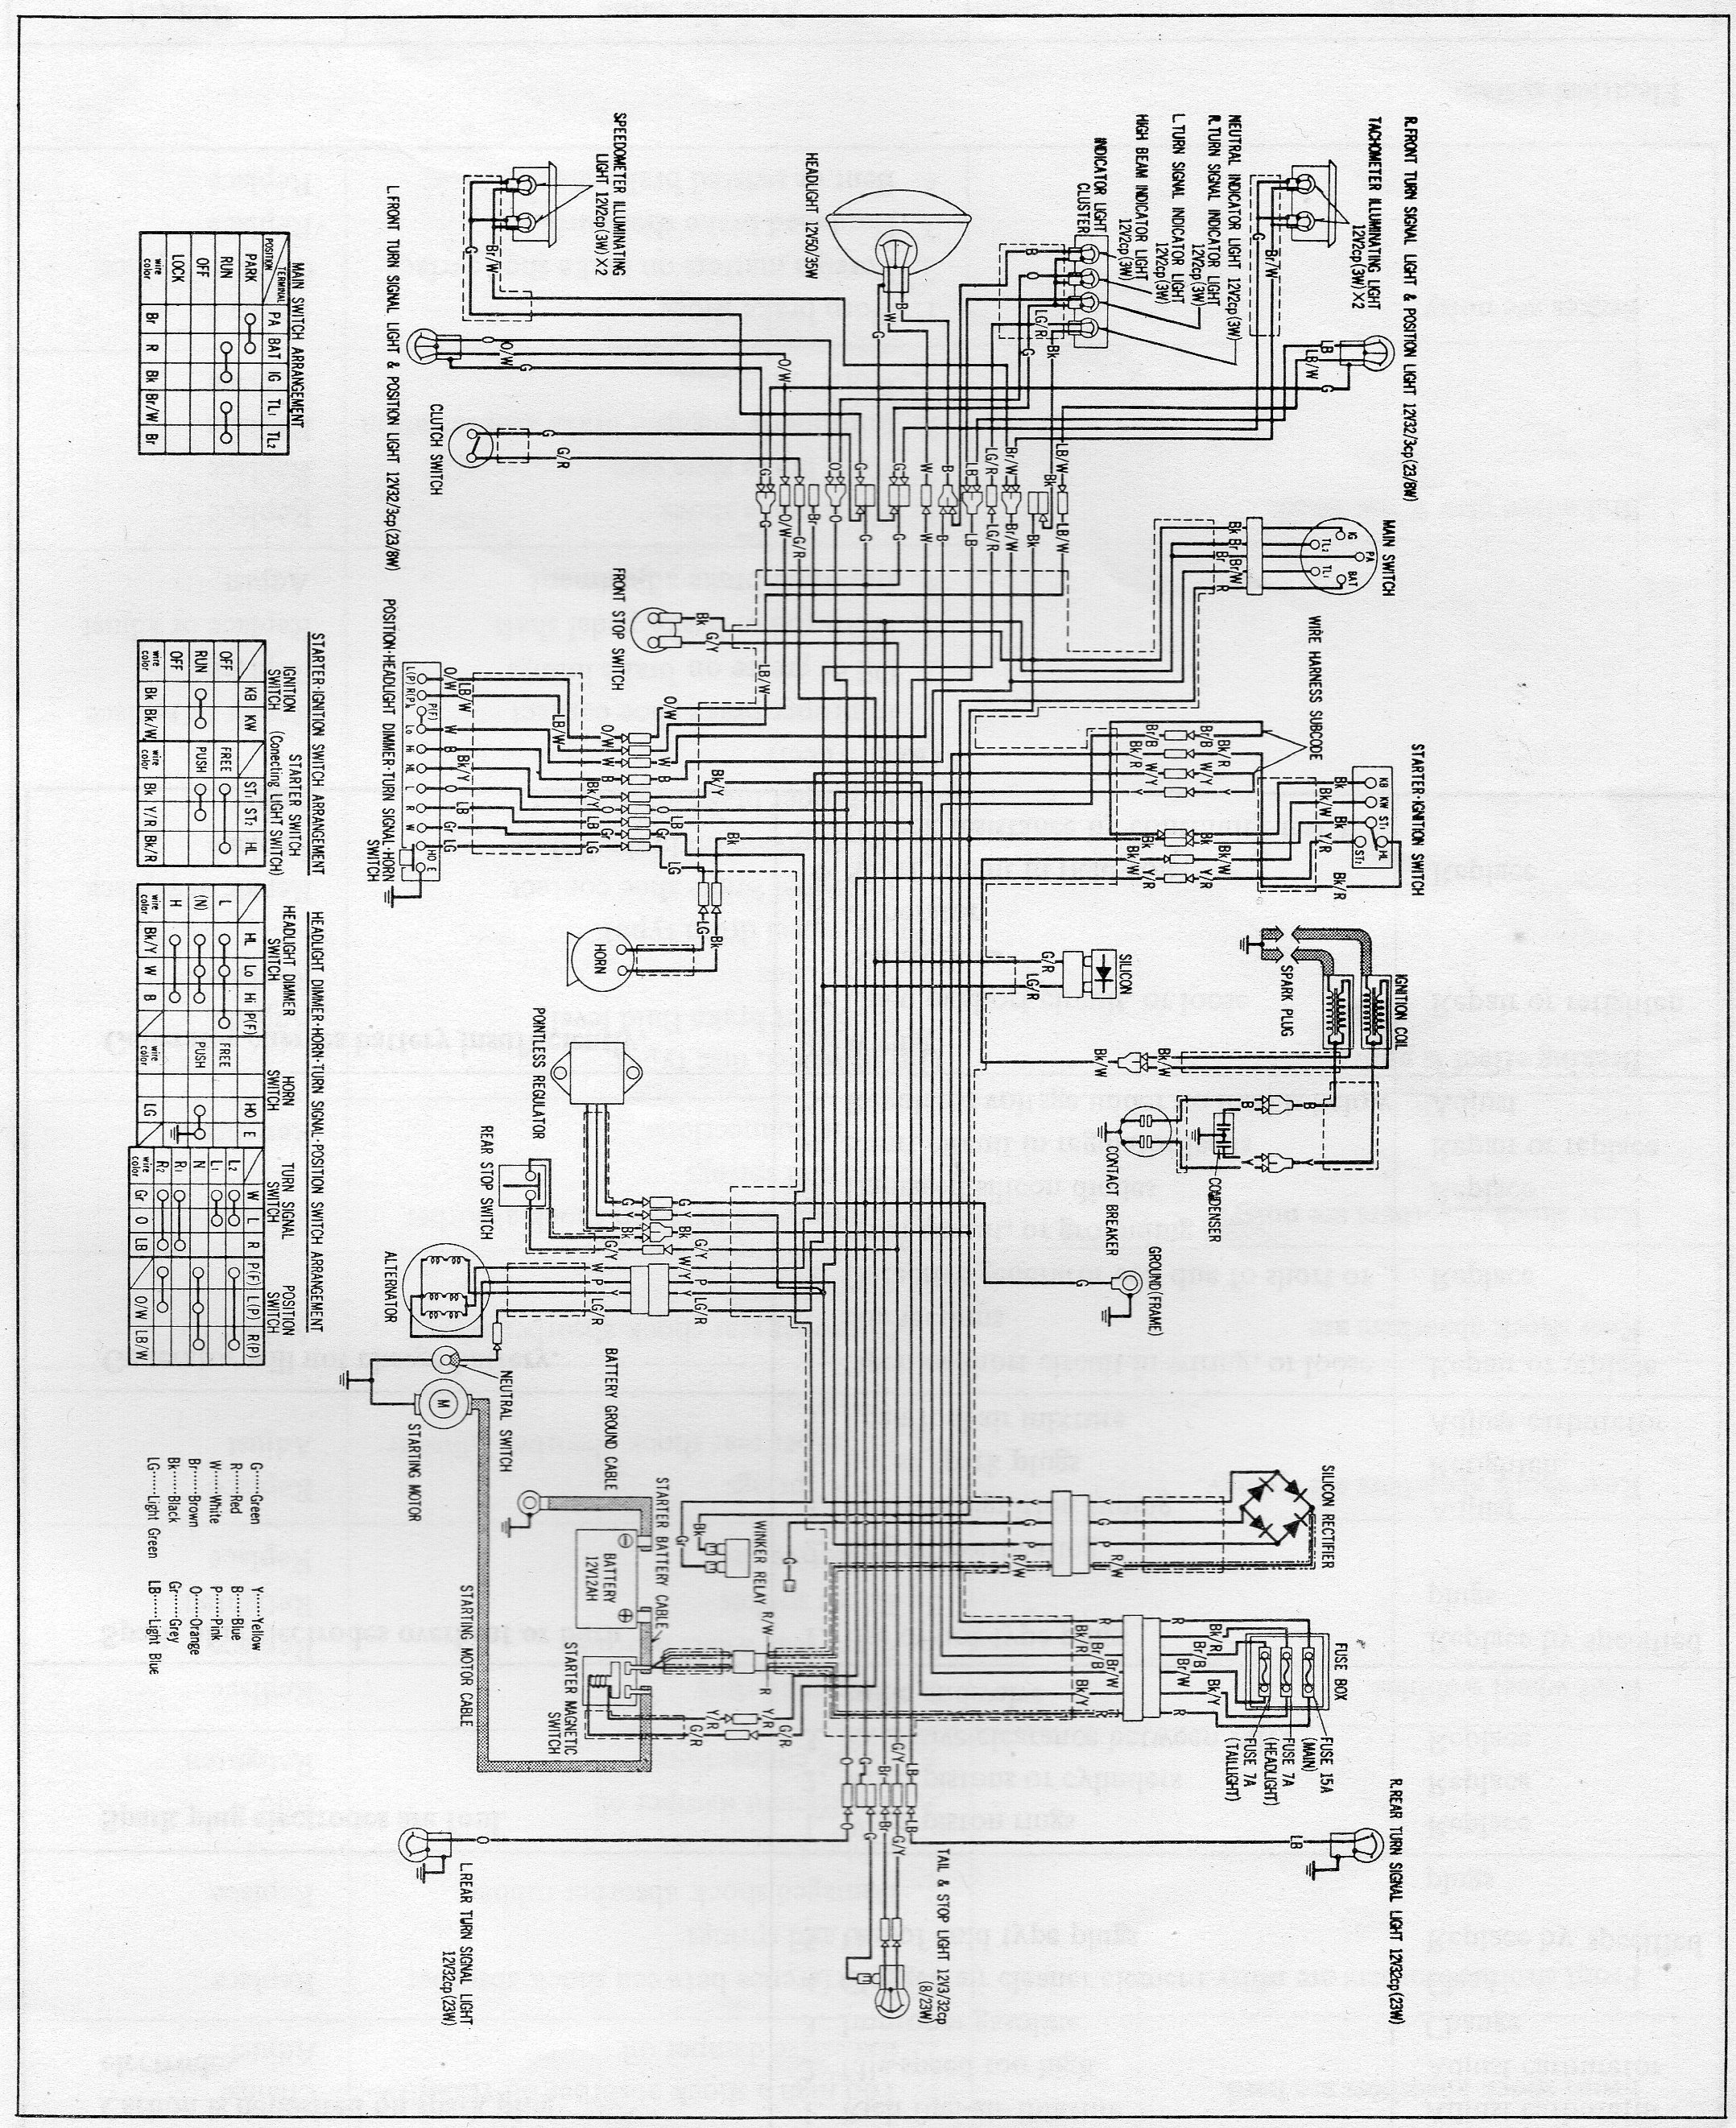 Wiring Diagram Broan 154b 1993 Jeep Grand Cherokee Fuse Panel Diagram Tesla Tegang Madfish It